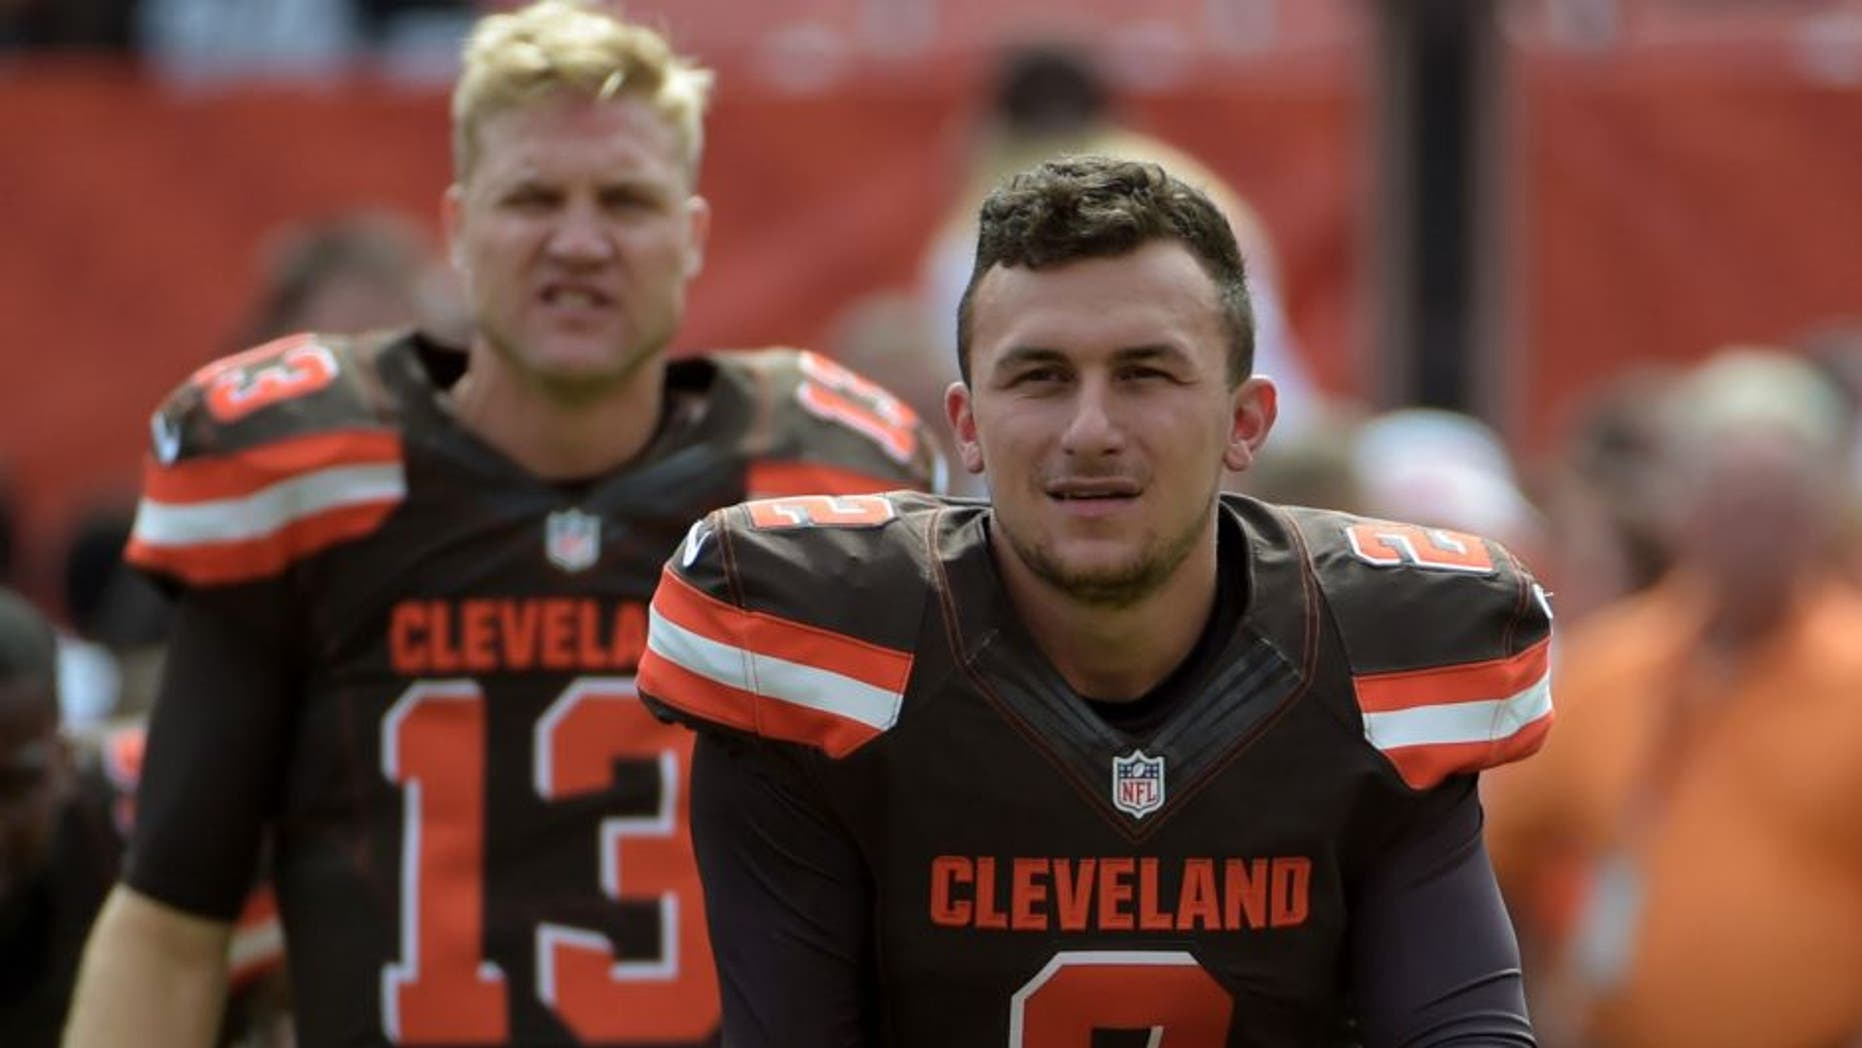 Sep 27, 2015; Cleveland, OH, USA; Cleveland Browns quarterbacks Johnny Manziel (2) and Josh McCown (13) stretch before a NFL game against the Oakland Raiders at FirstEnergy Stadium.